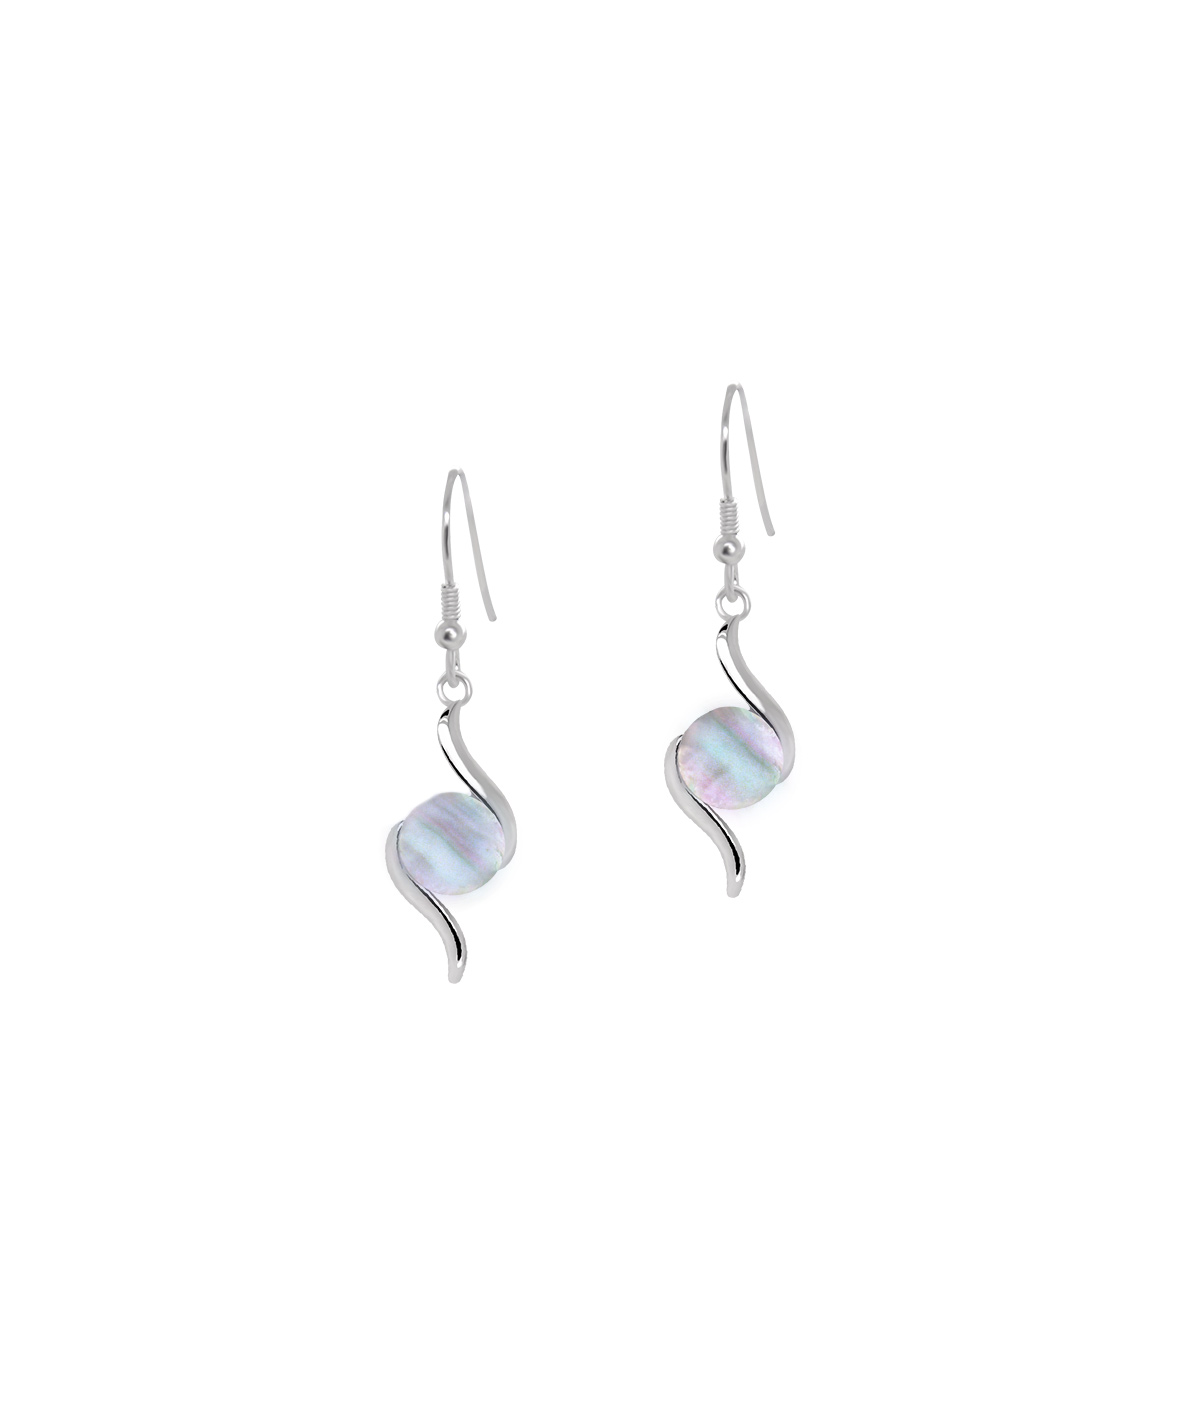 Jersey Ormer Double Swirl Earrings